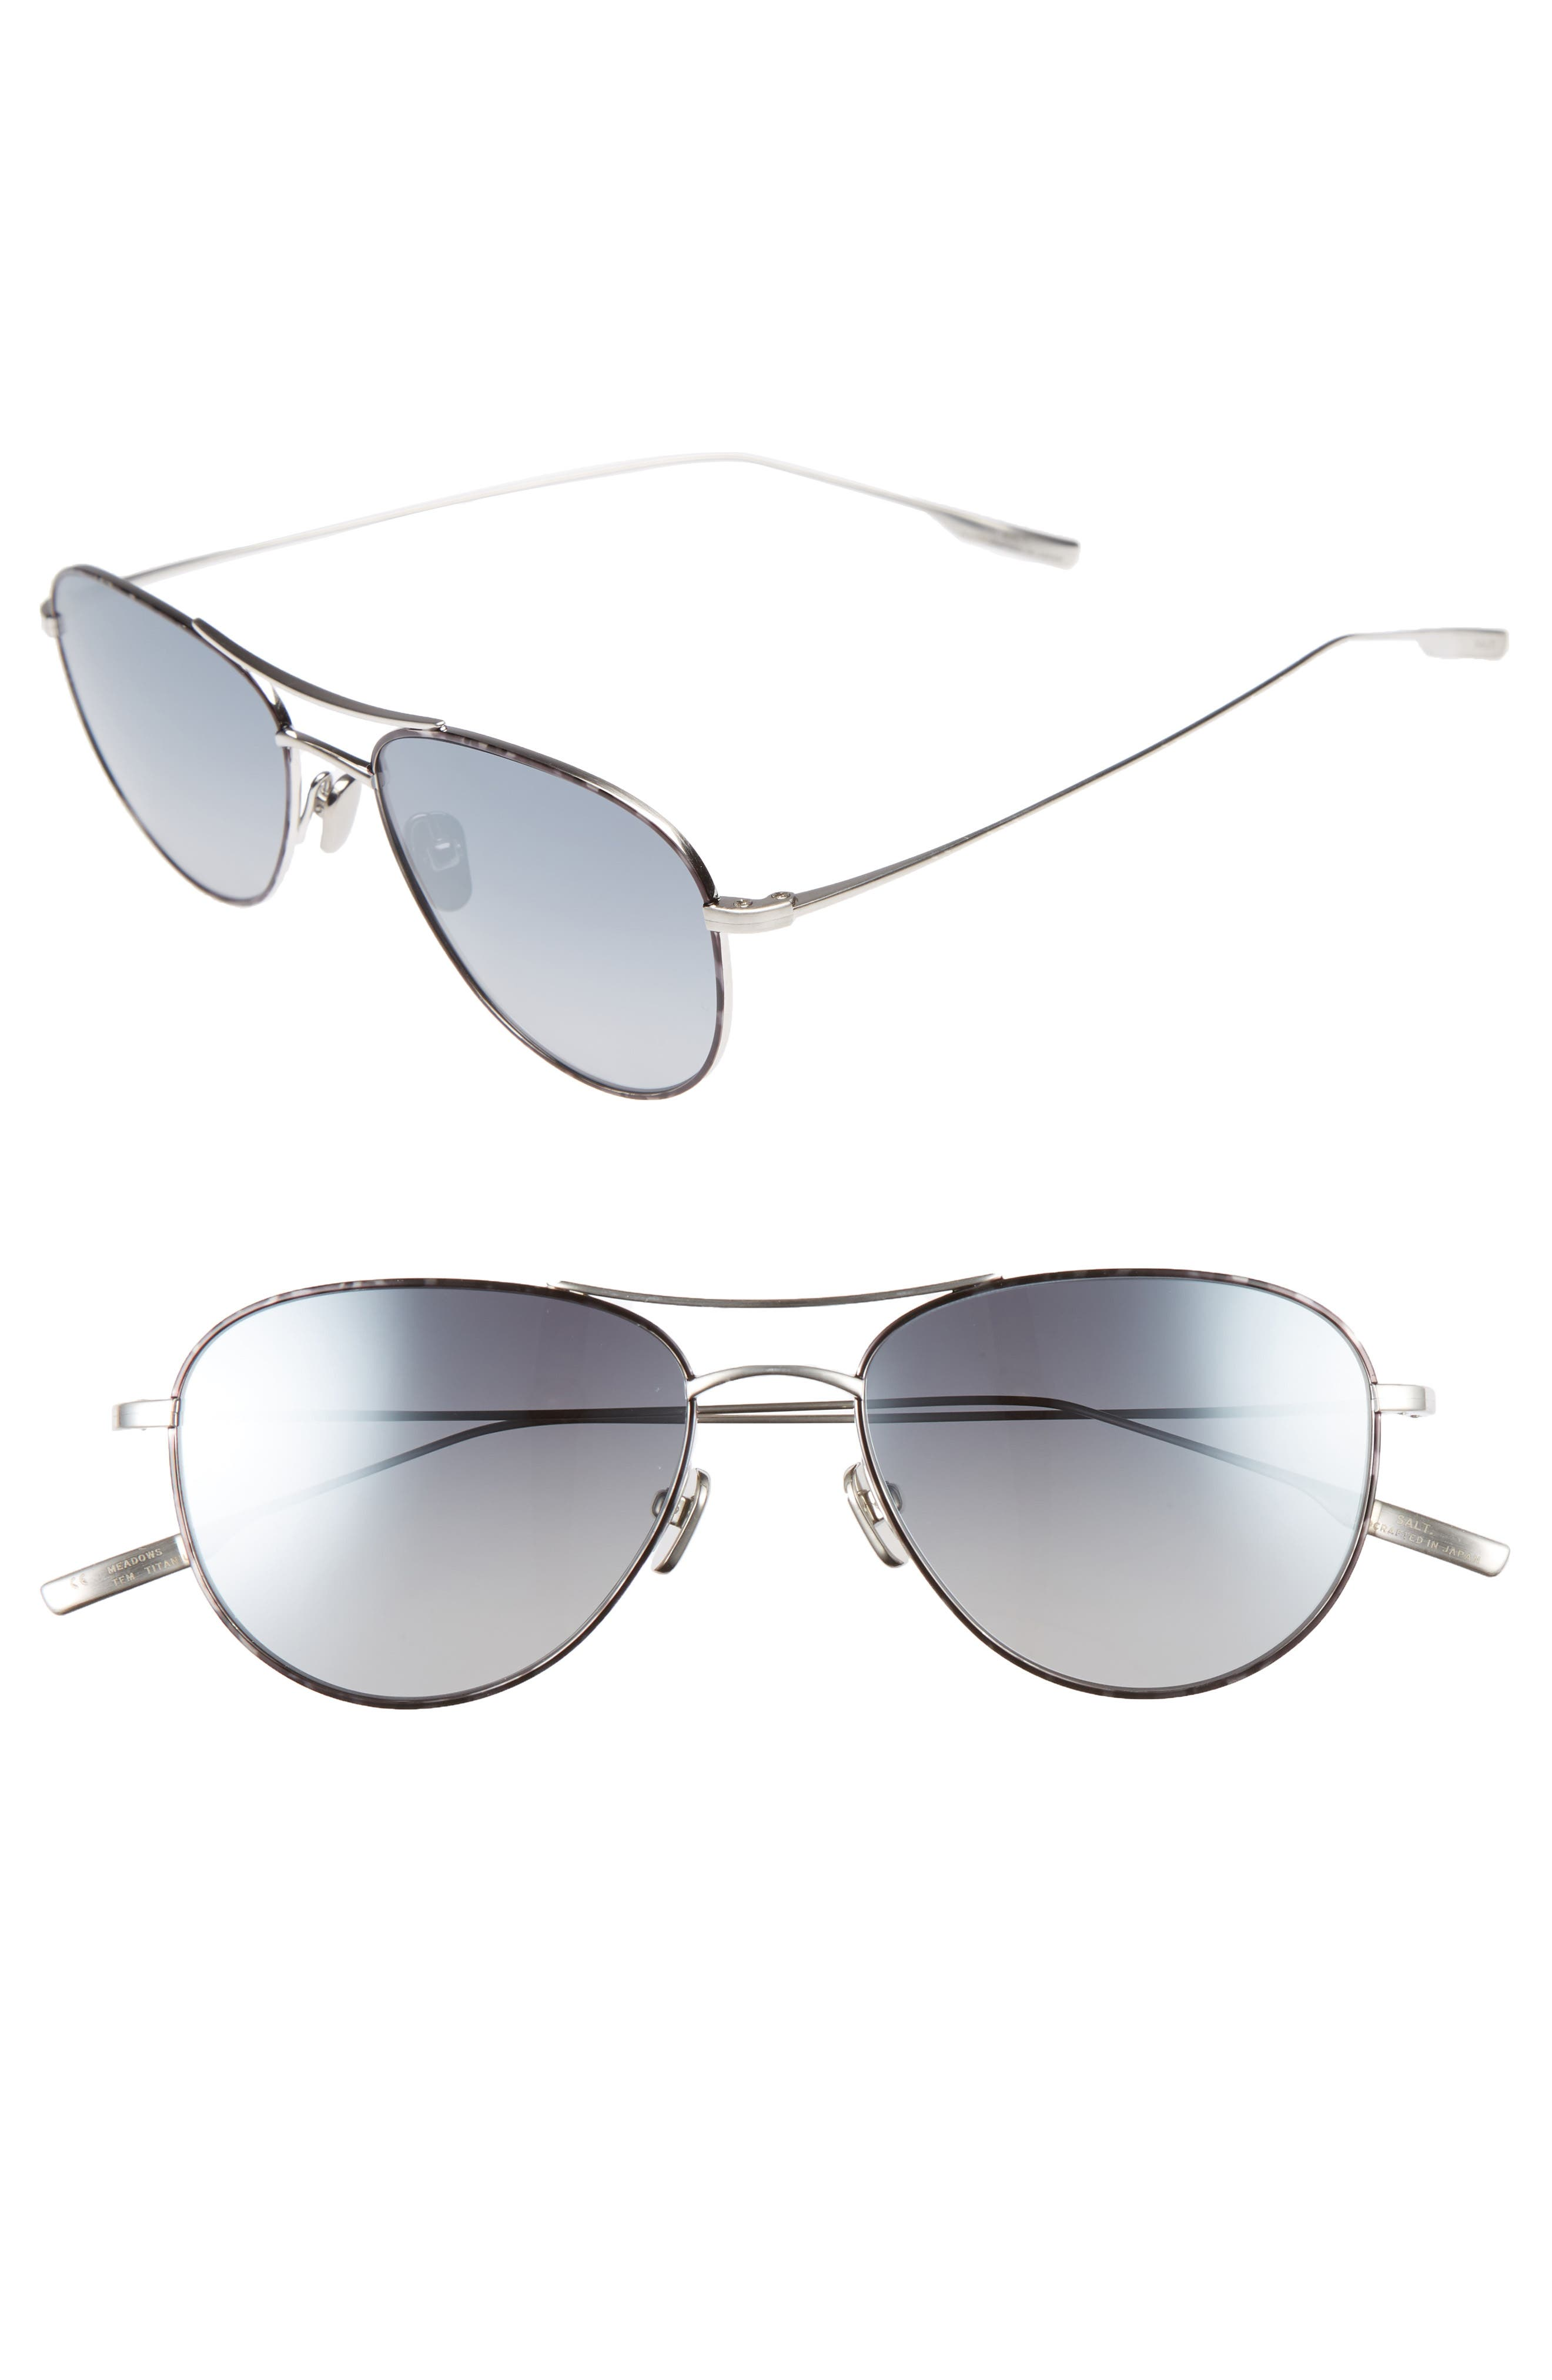 SALT Meadows 54mm Polarized Aviator Sunglasses